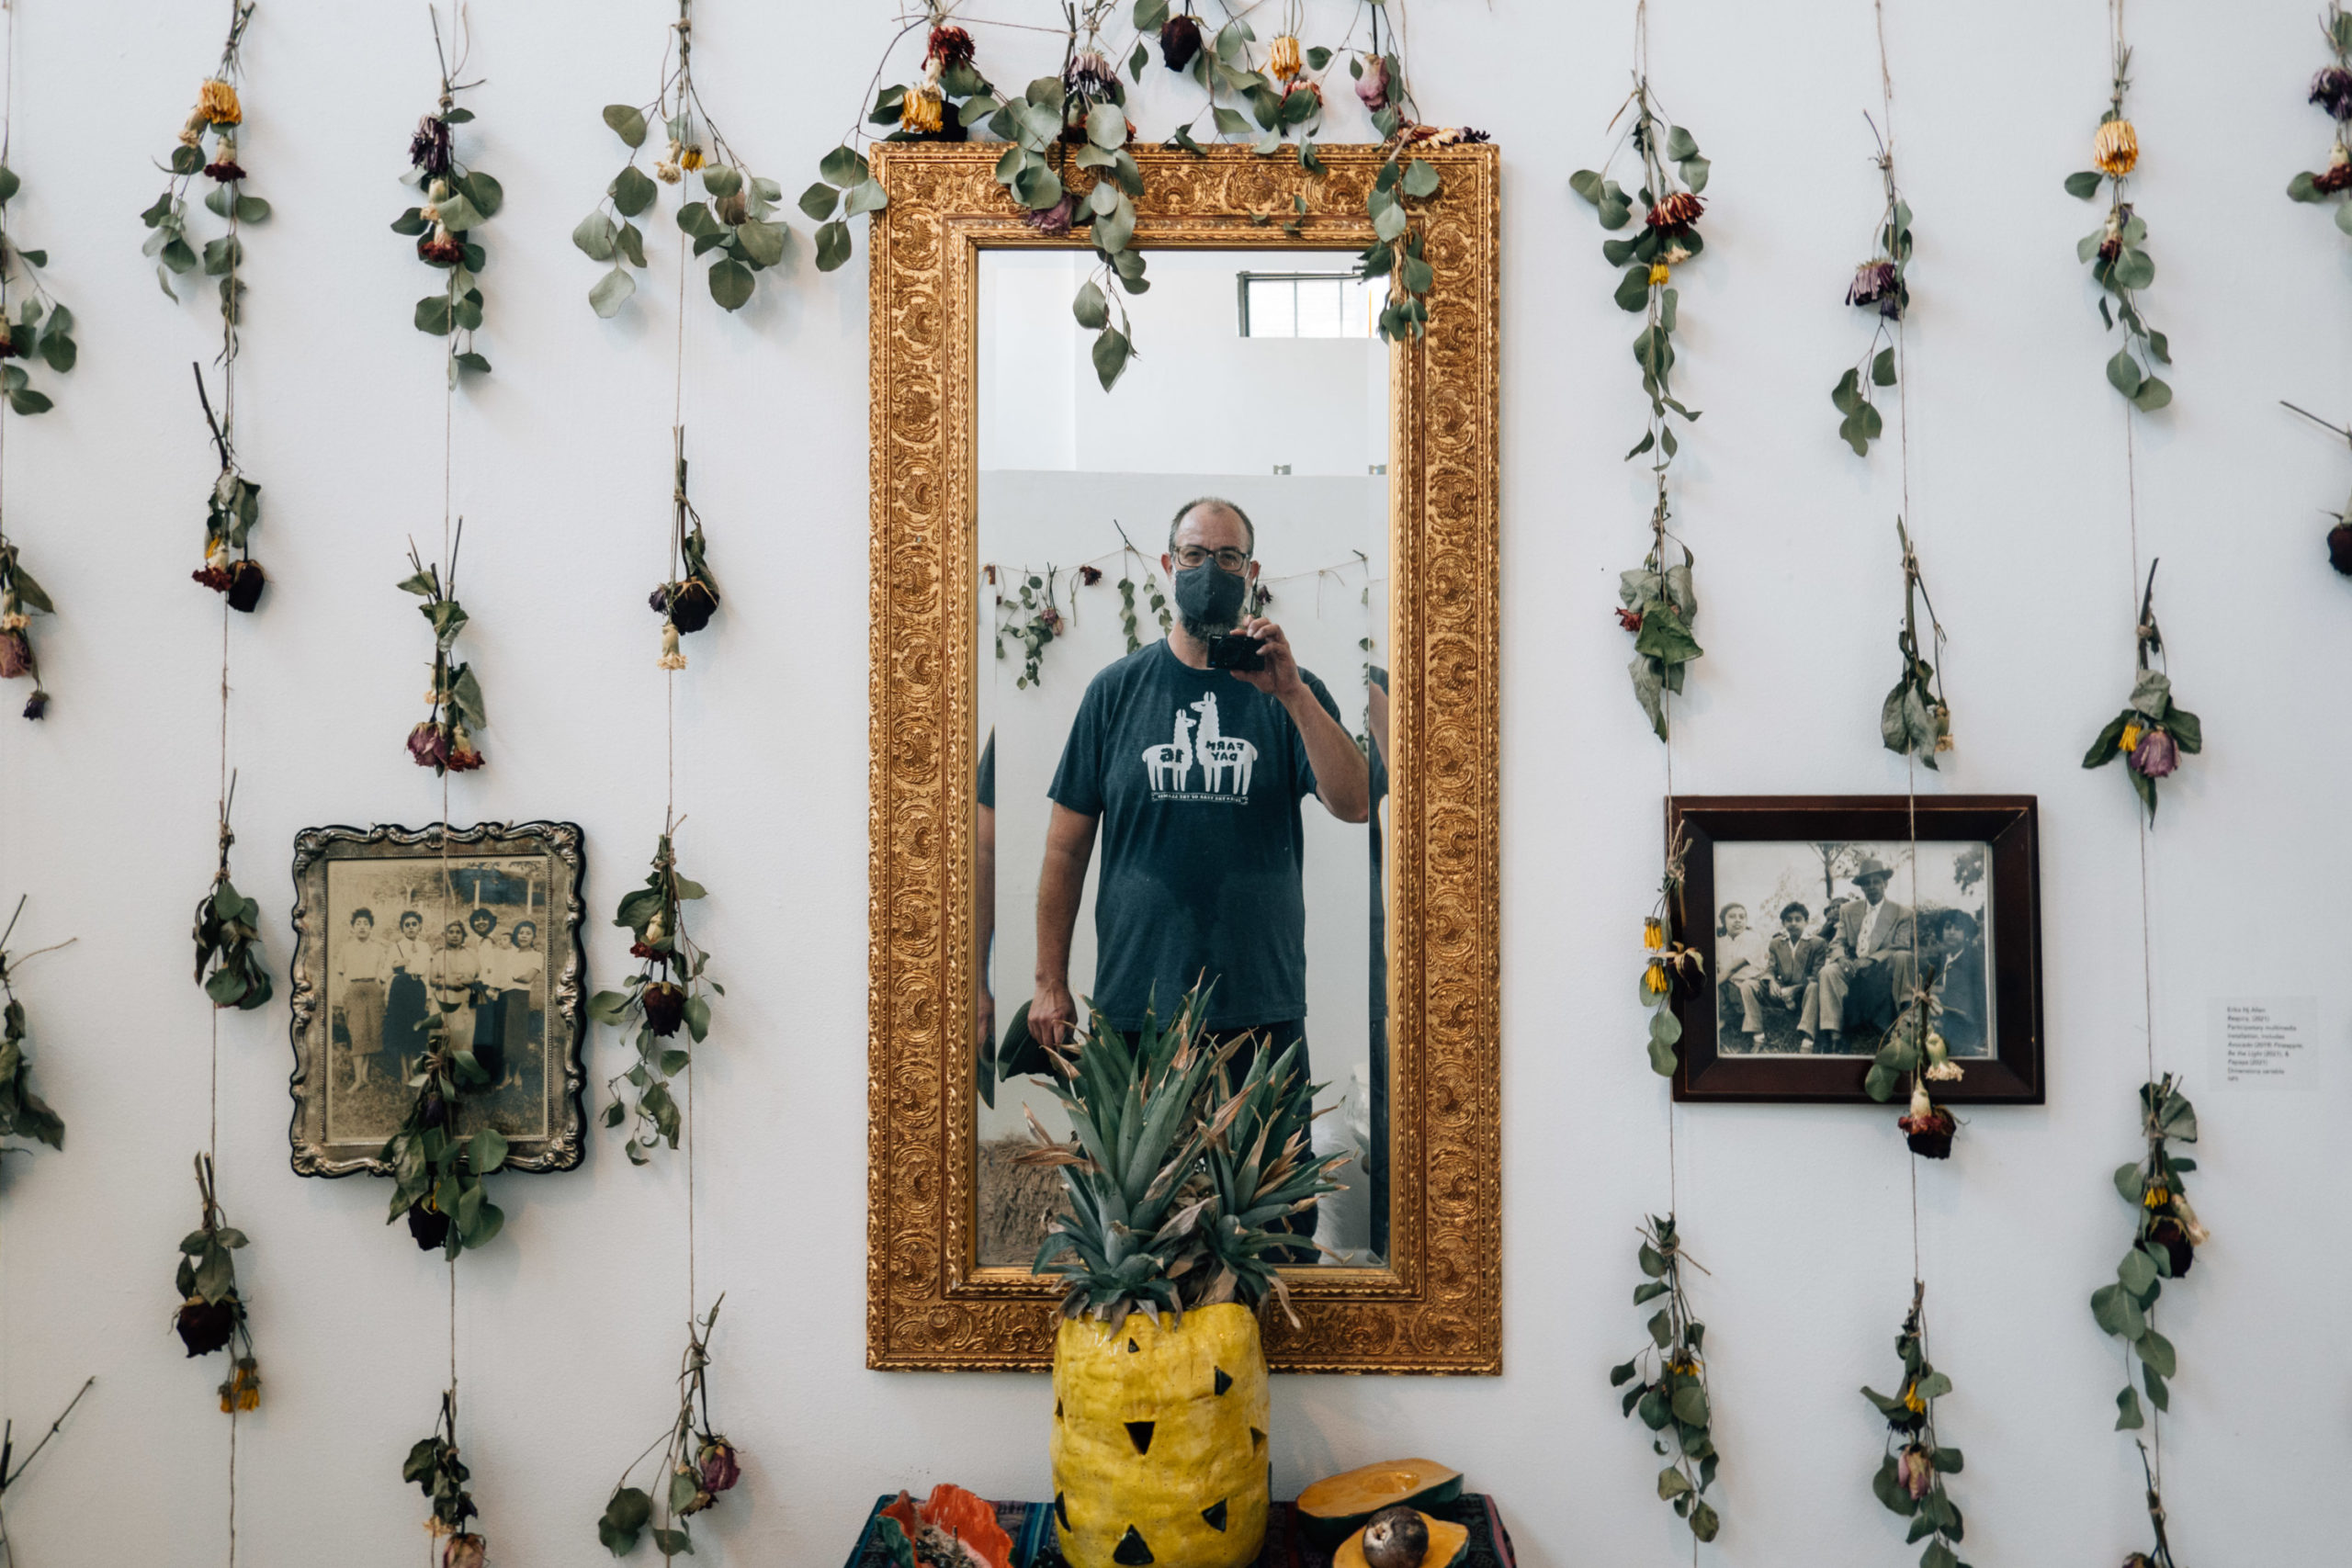 A balding bearded man takes a selfie in a mirror set in an art gallery surrounded by dried flowers